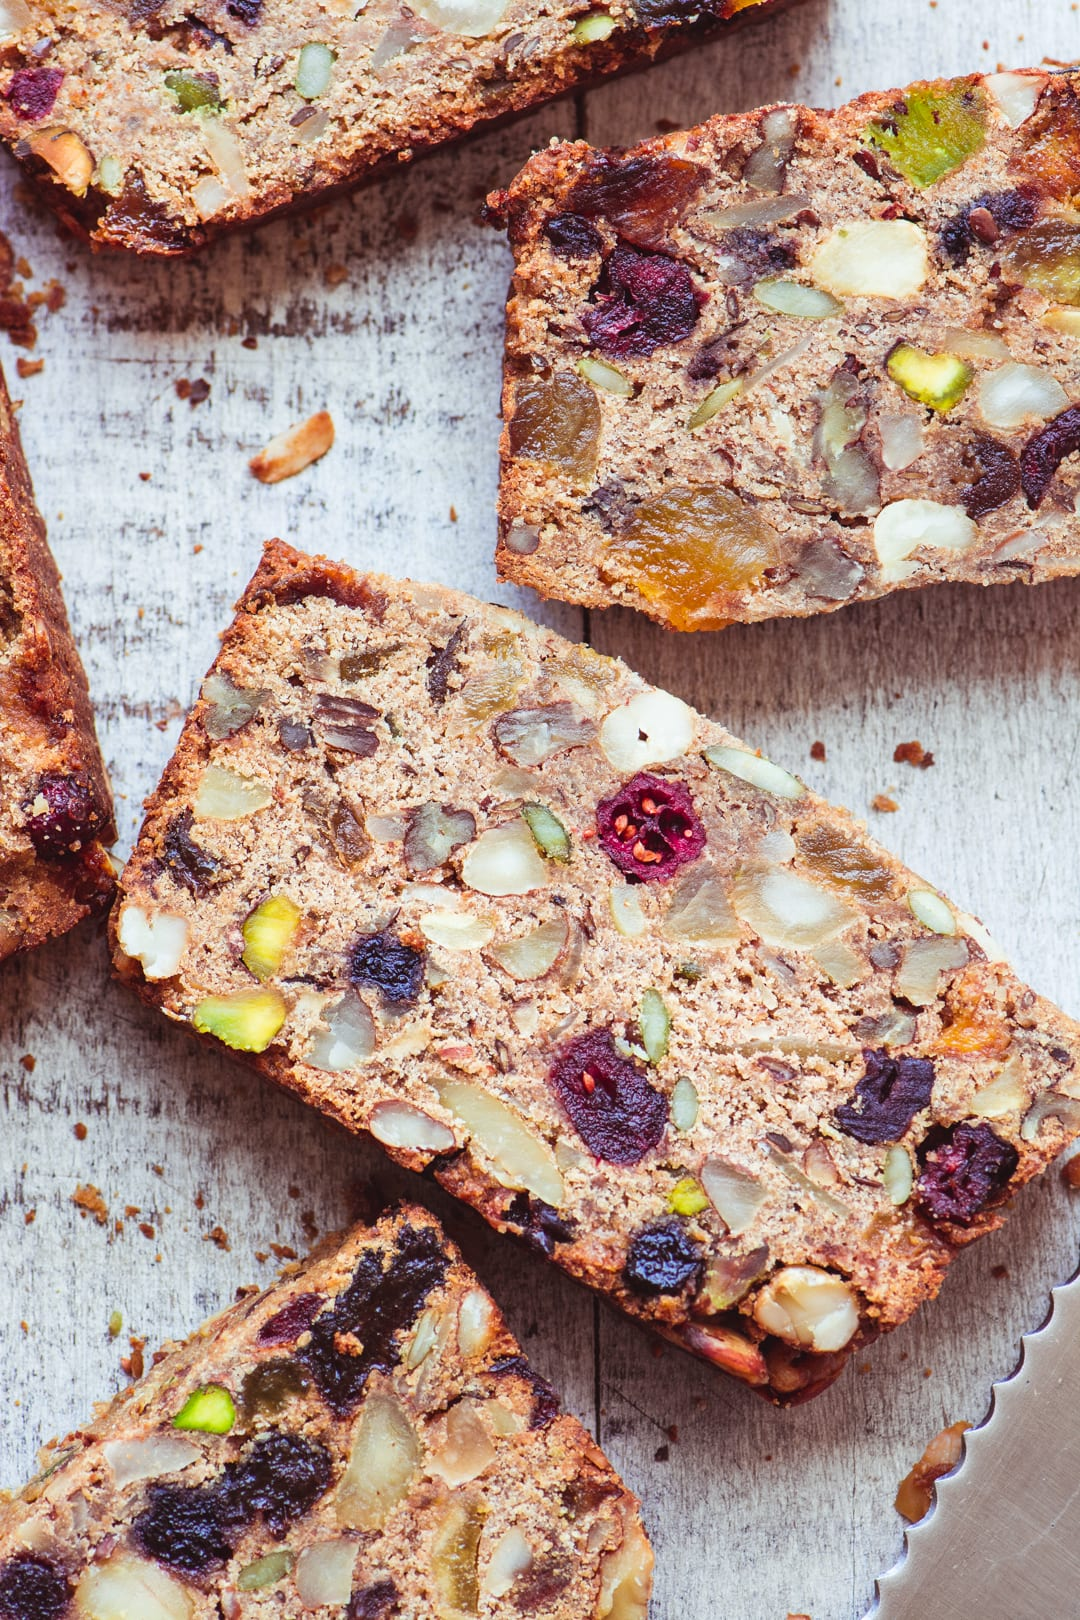 slices of paleo fruit and nut bread